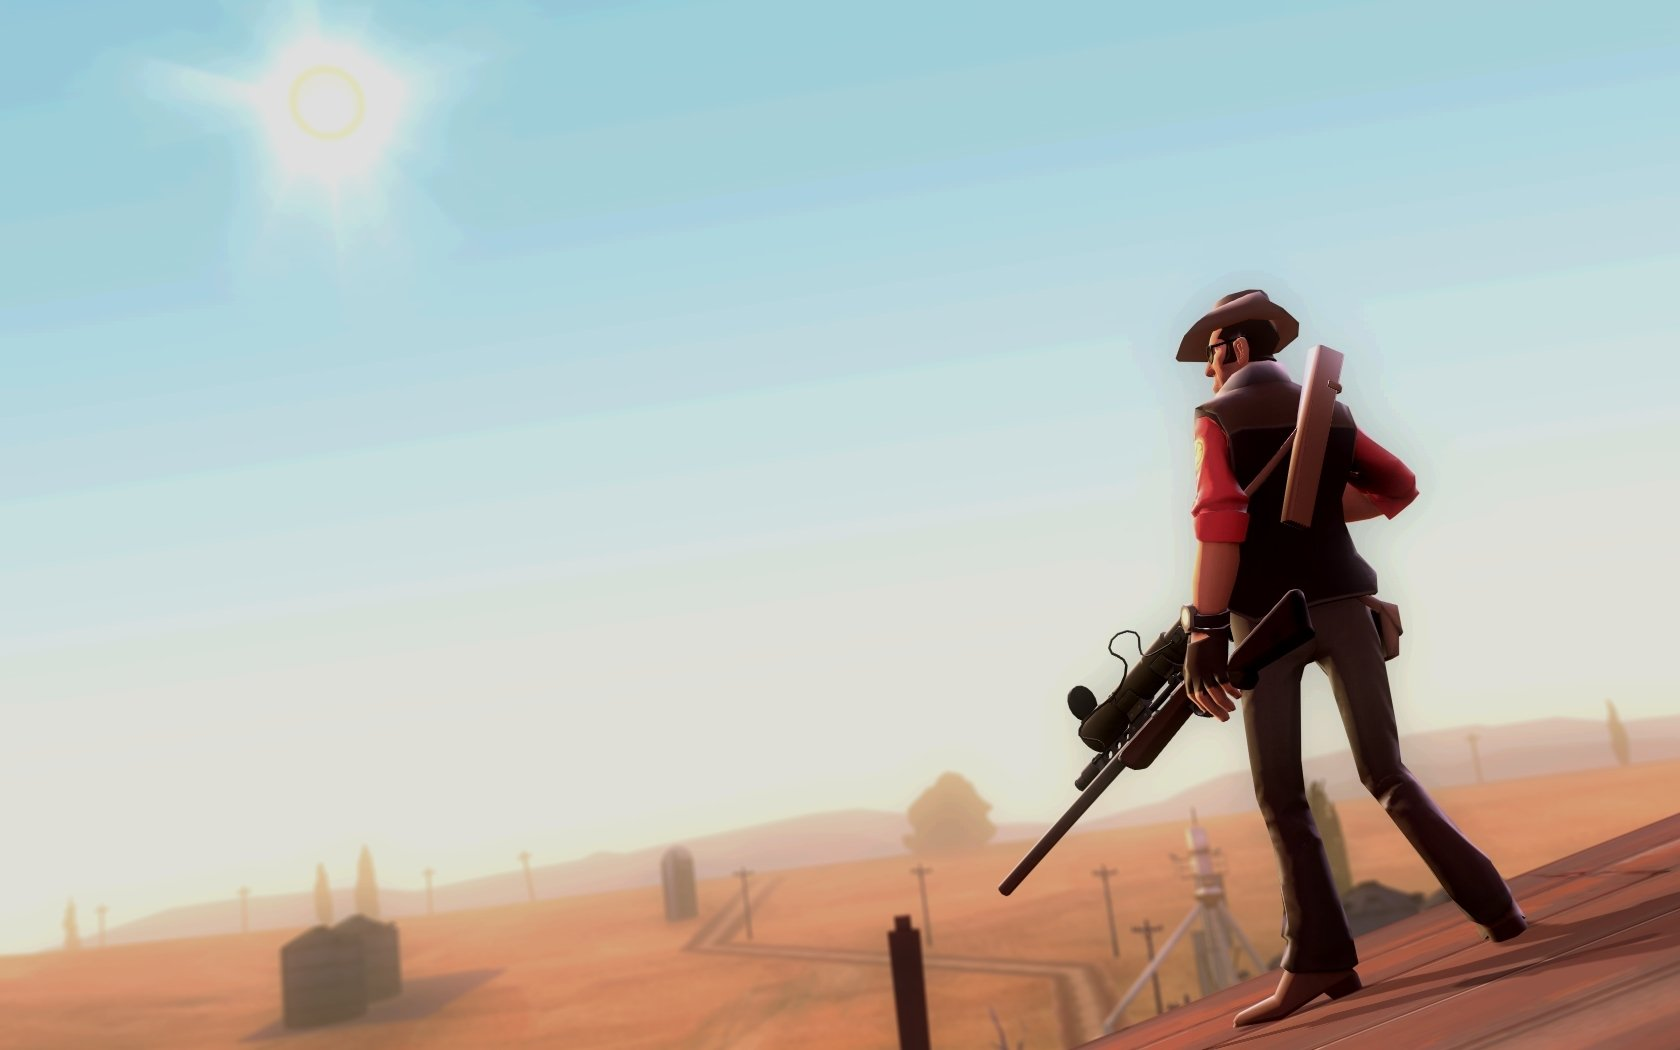 355 Team Fortress 2 HD Wallpapers